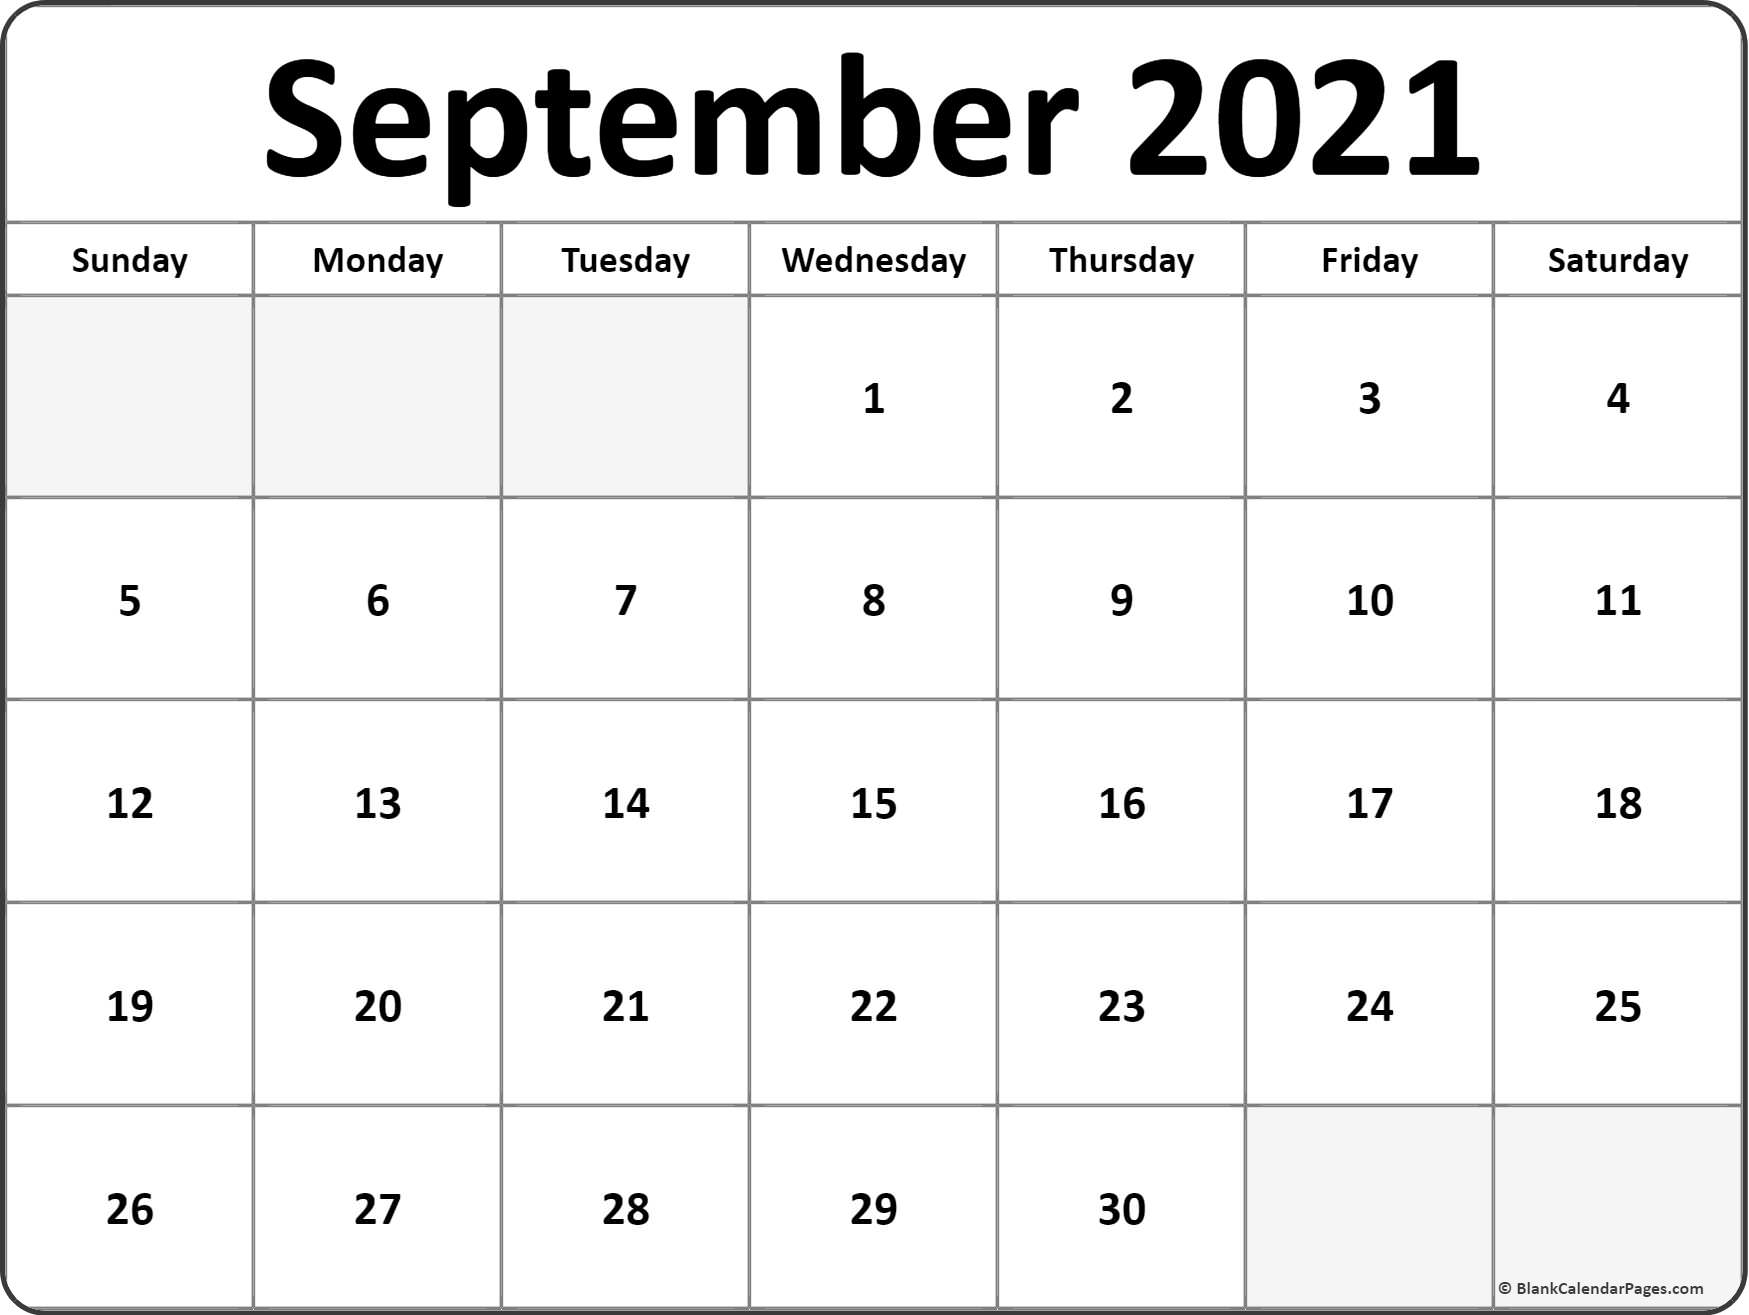 September 2021 Blank Calendar Collection. for 2021 Writable Calendars By Month